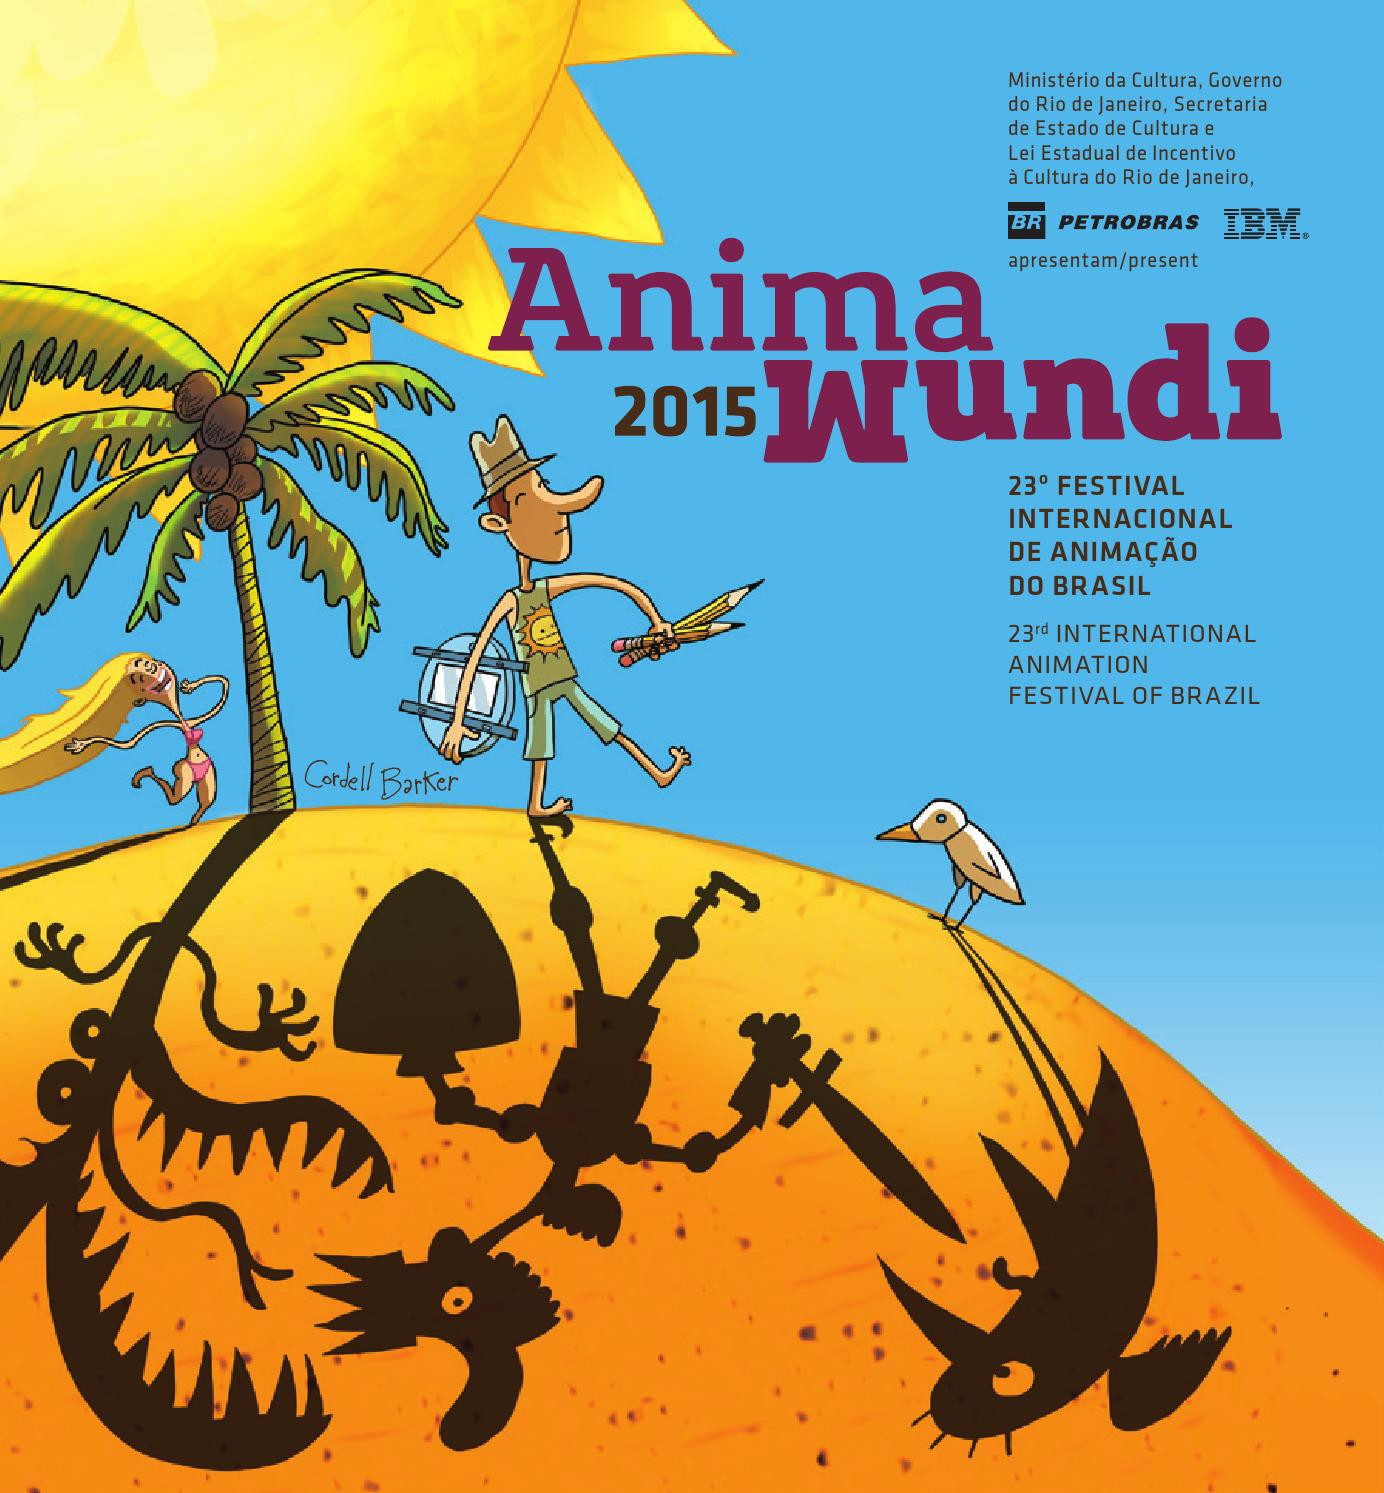 4b662c32c1c Anm 0805 catalogo single by Anima Mundi - issuu